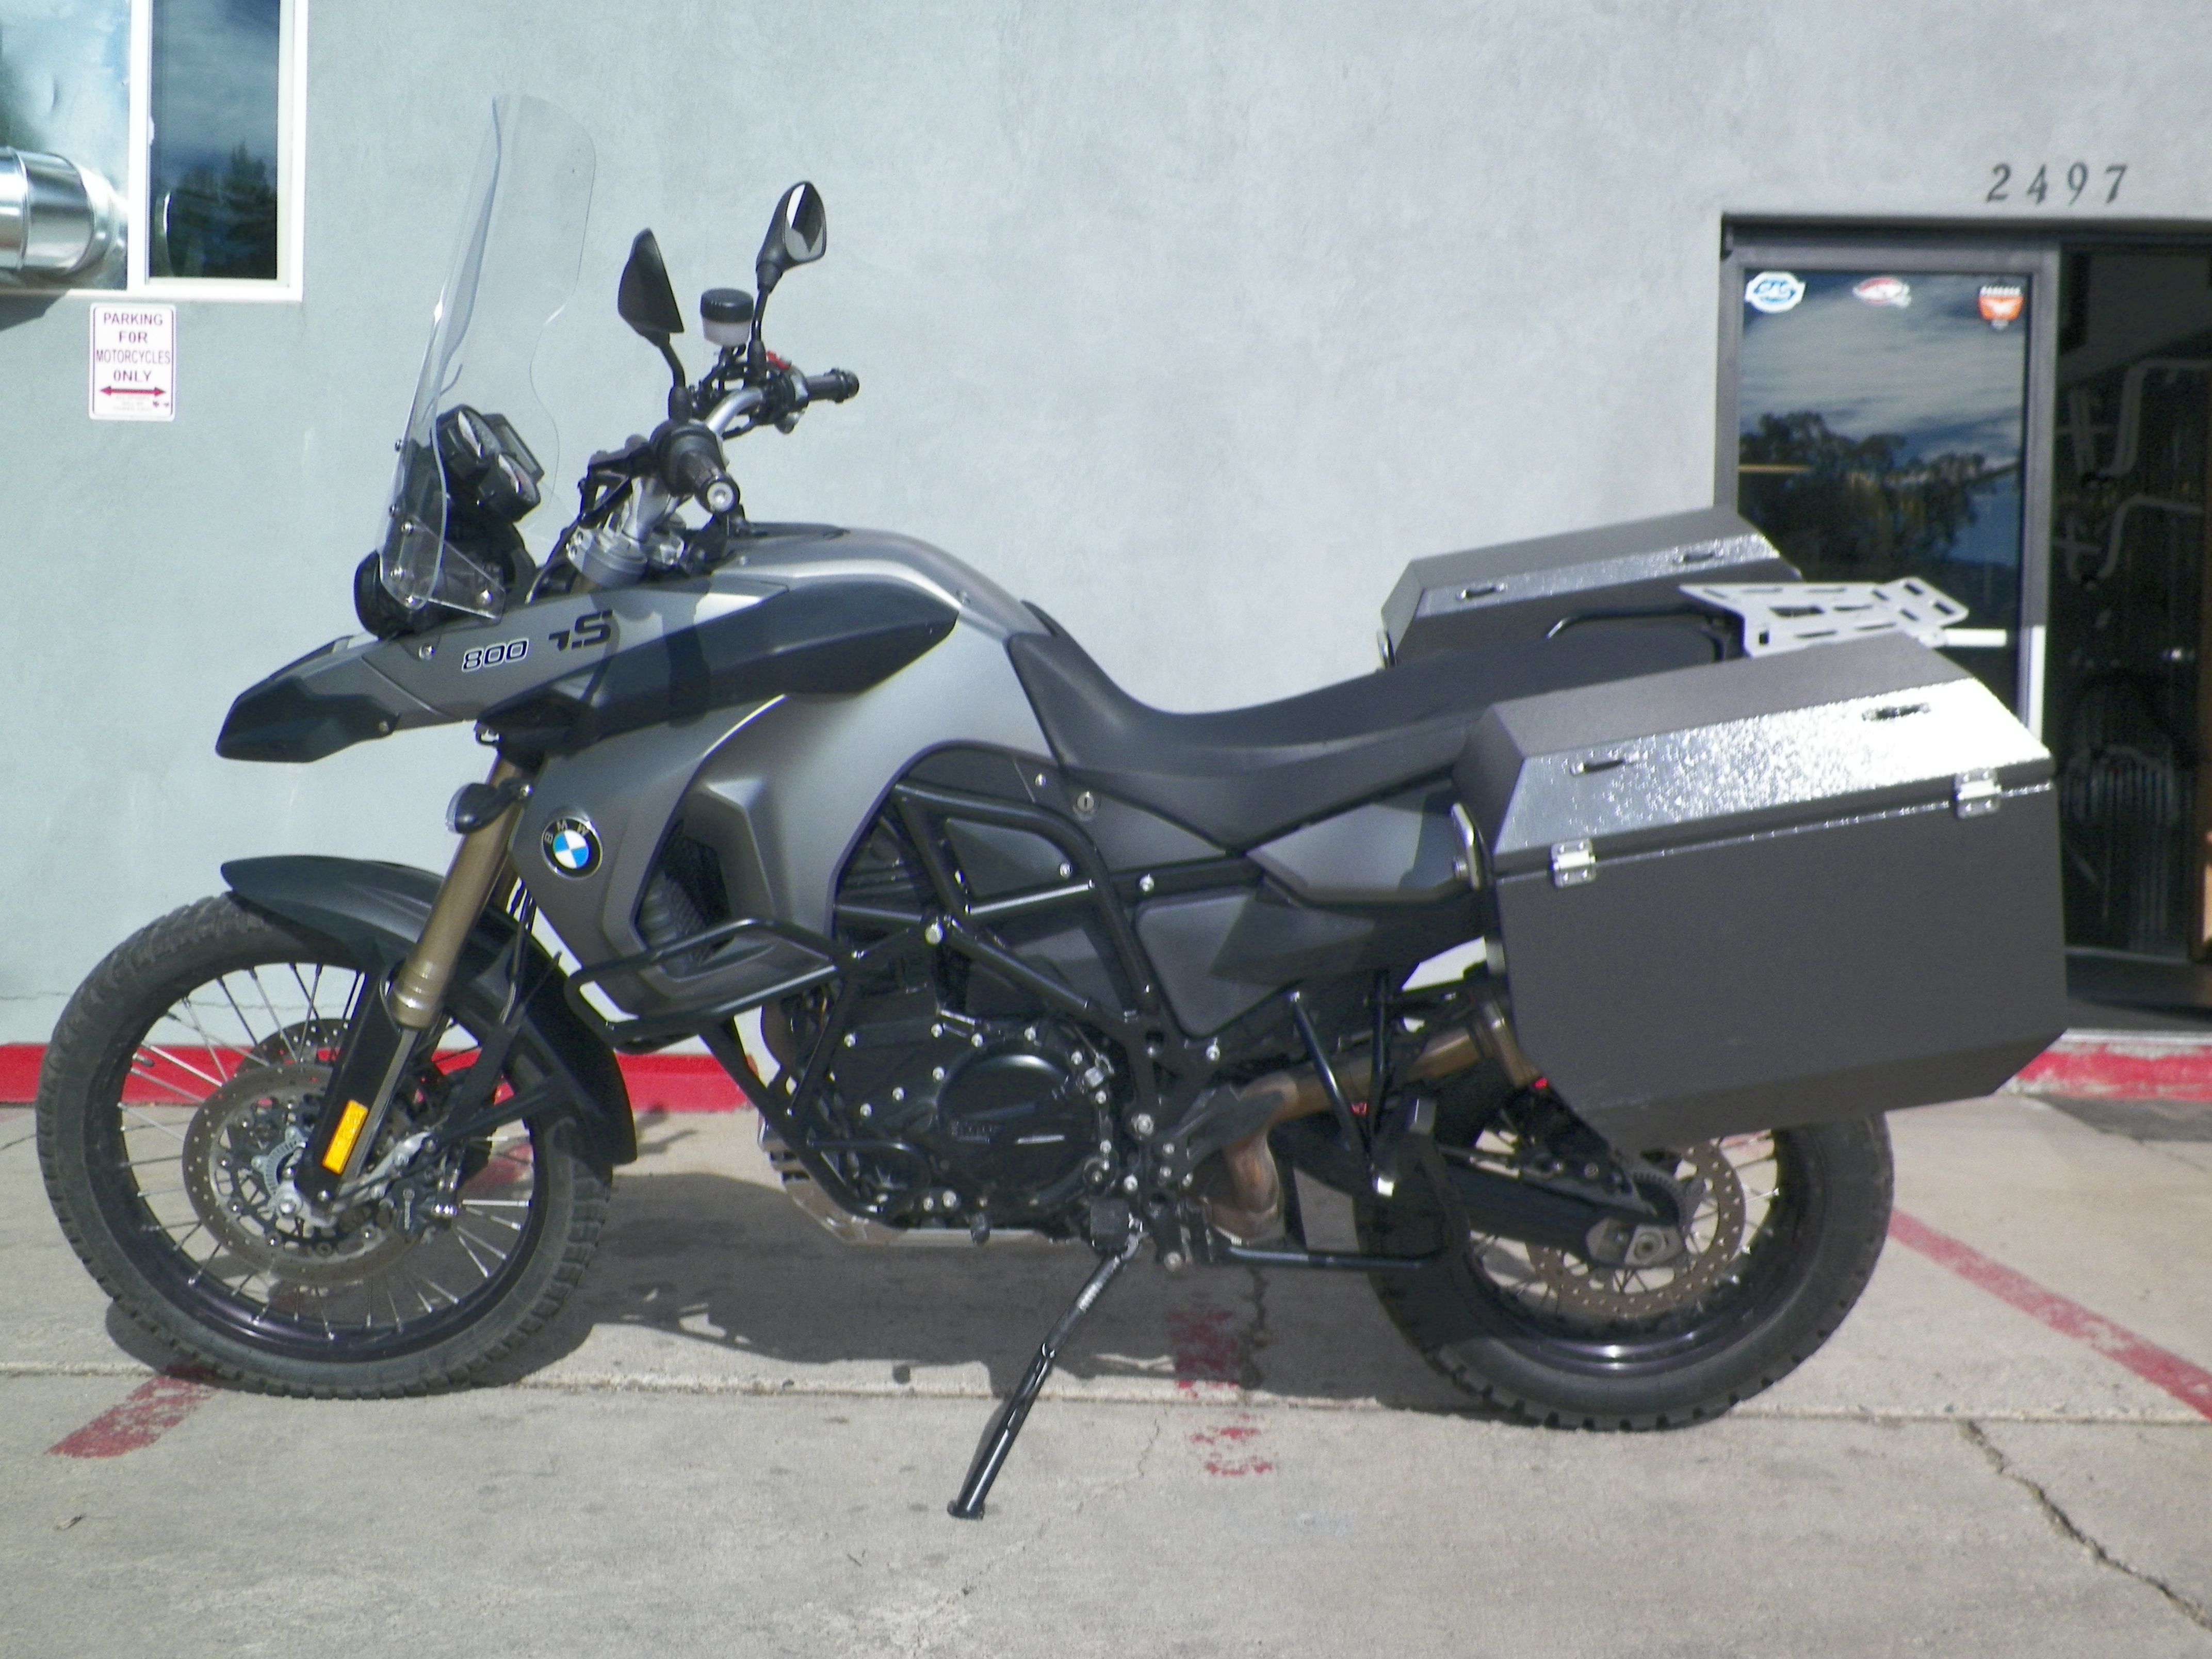 2009 F800gs Seat Height